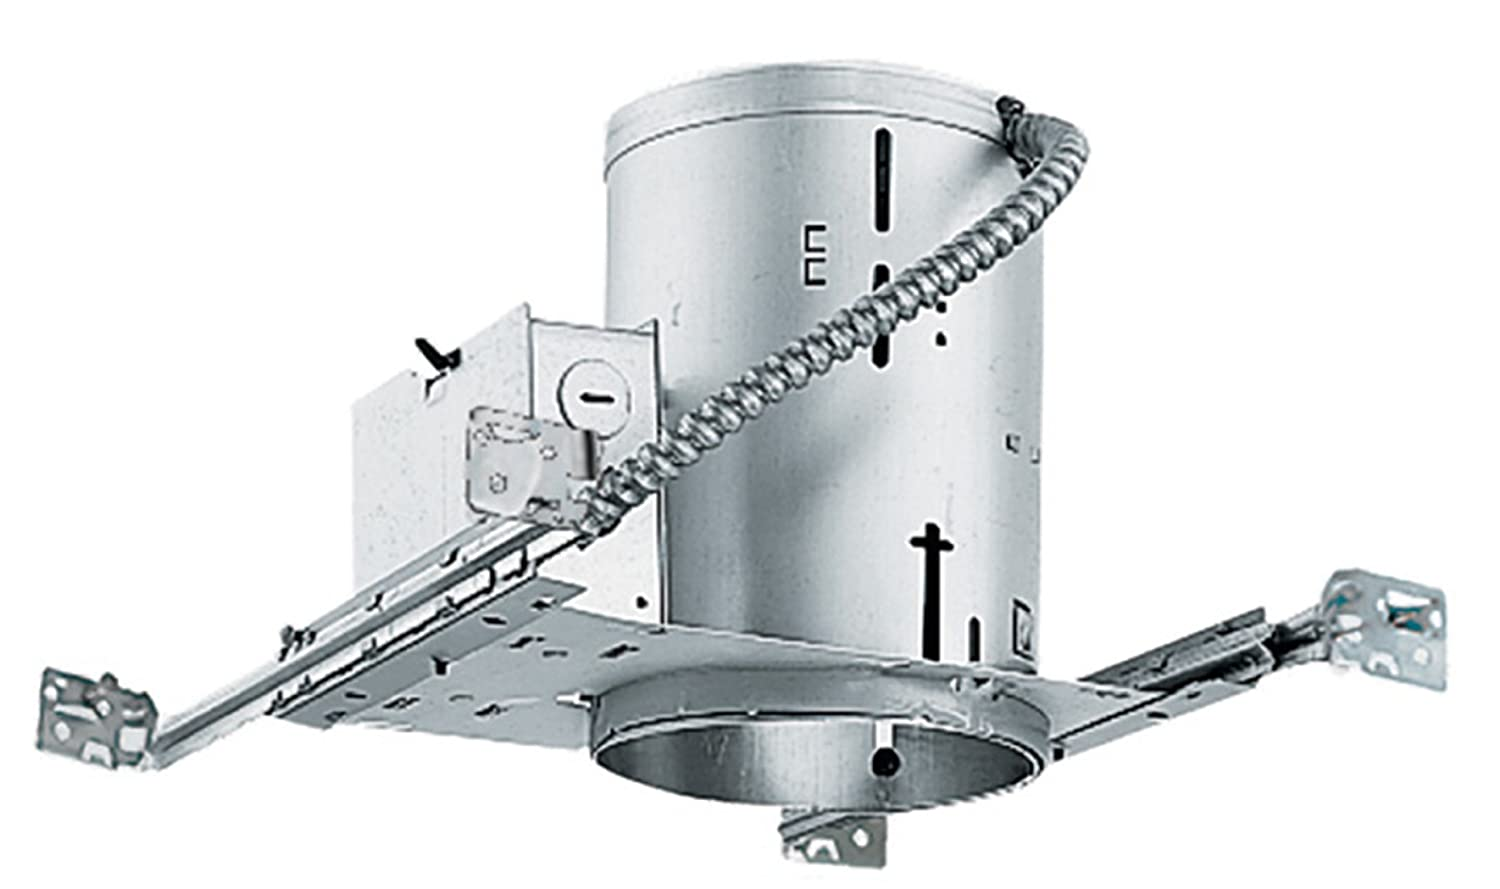 Juno Lighting TC20 5-Inch Non-IC Rated Construction Universal Housing - Recessed Light Fixture Housings - Amazon.com  sc 1 st  Amazon.com & Juno Lighting TC20 5-Inch Non-IC Rated Construction Universal ...